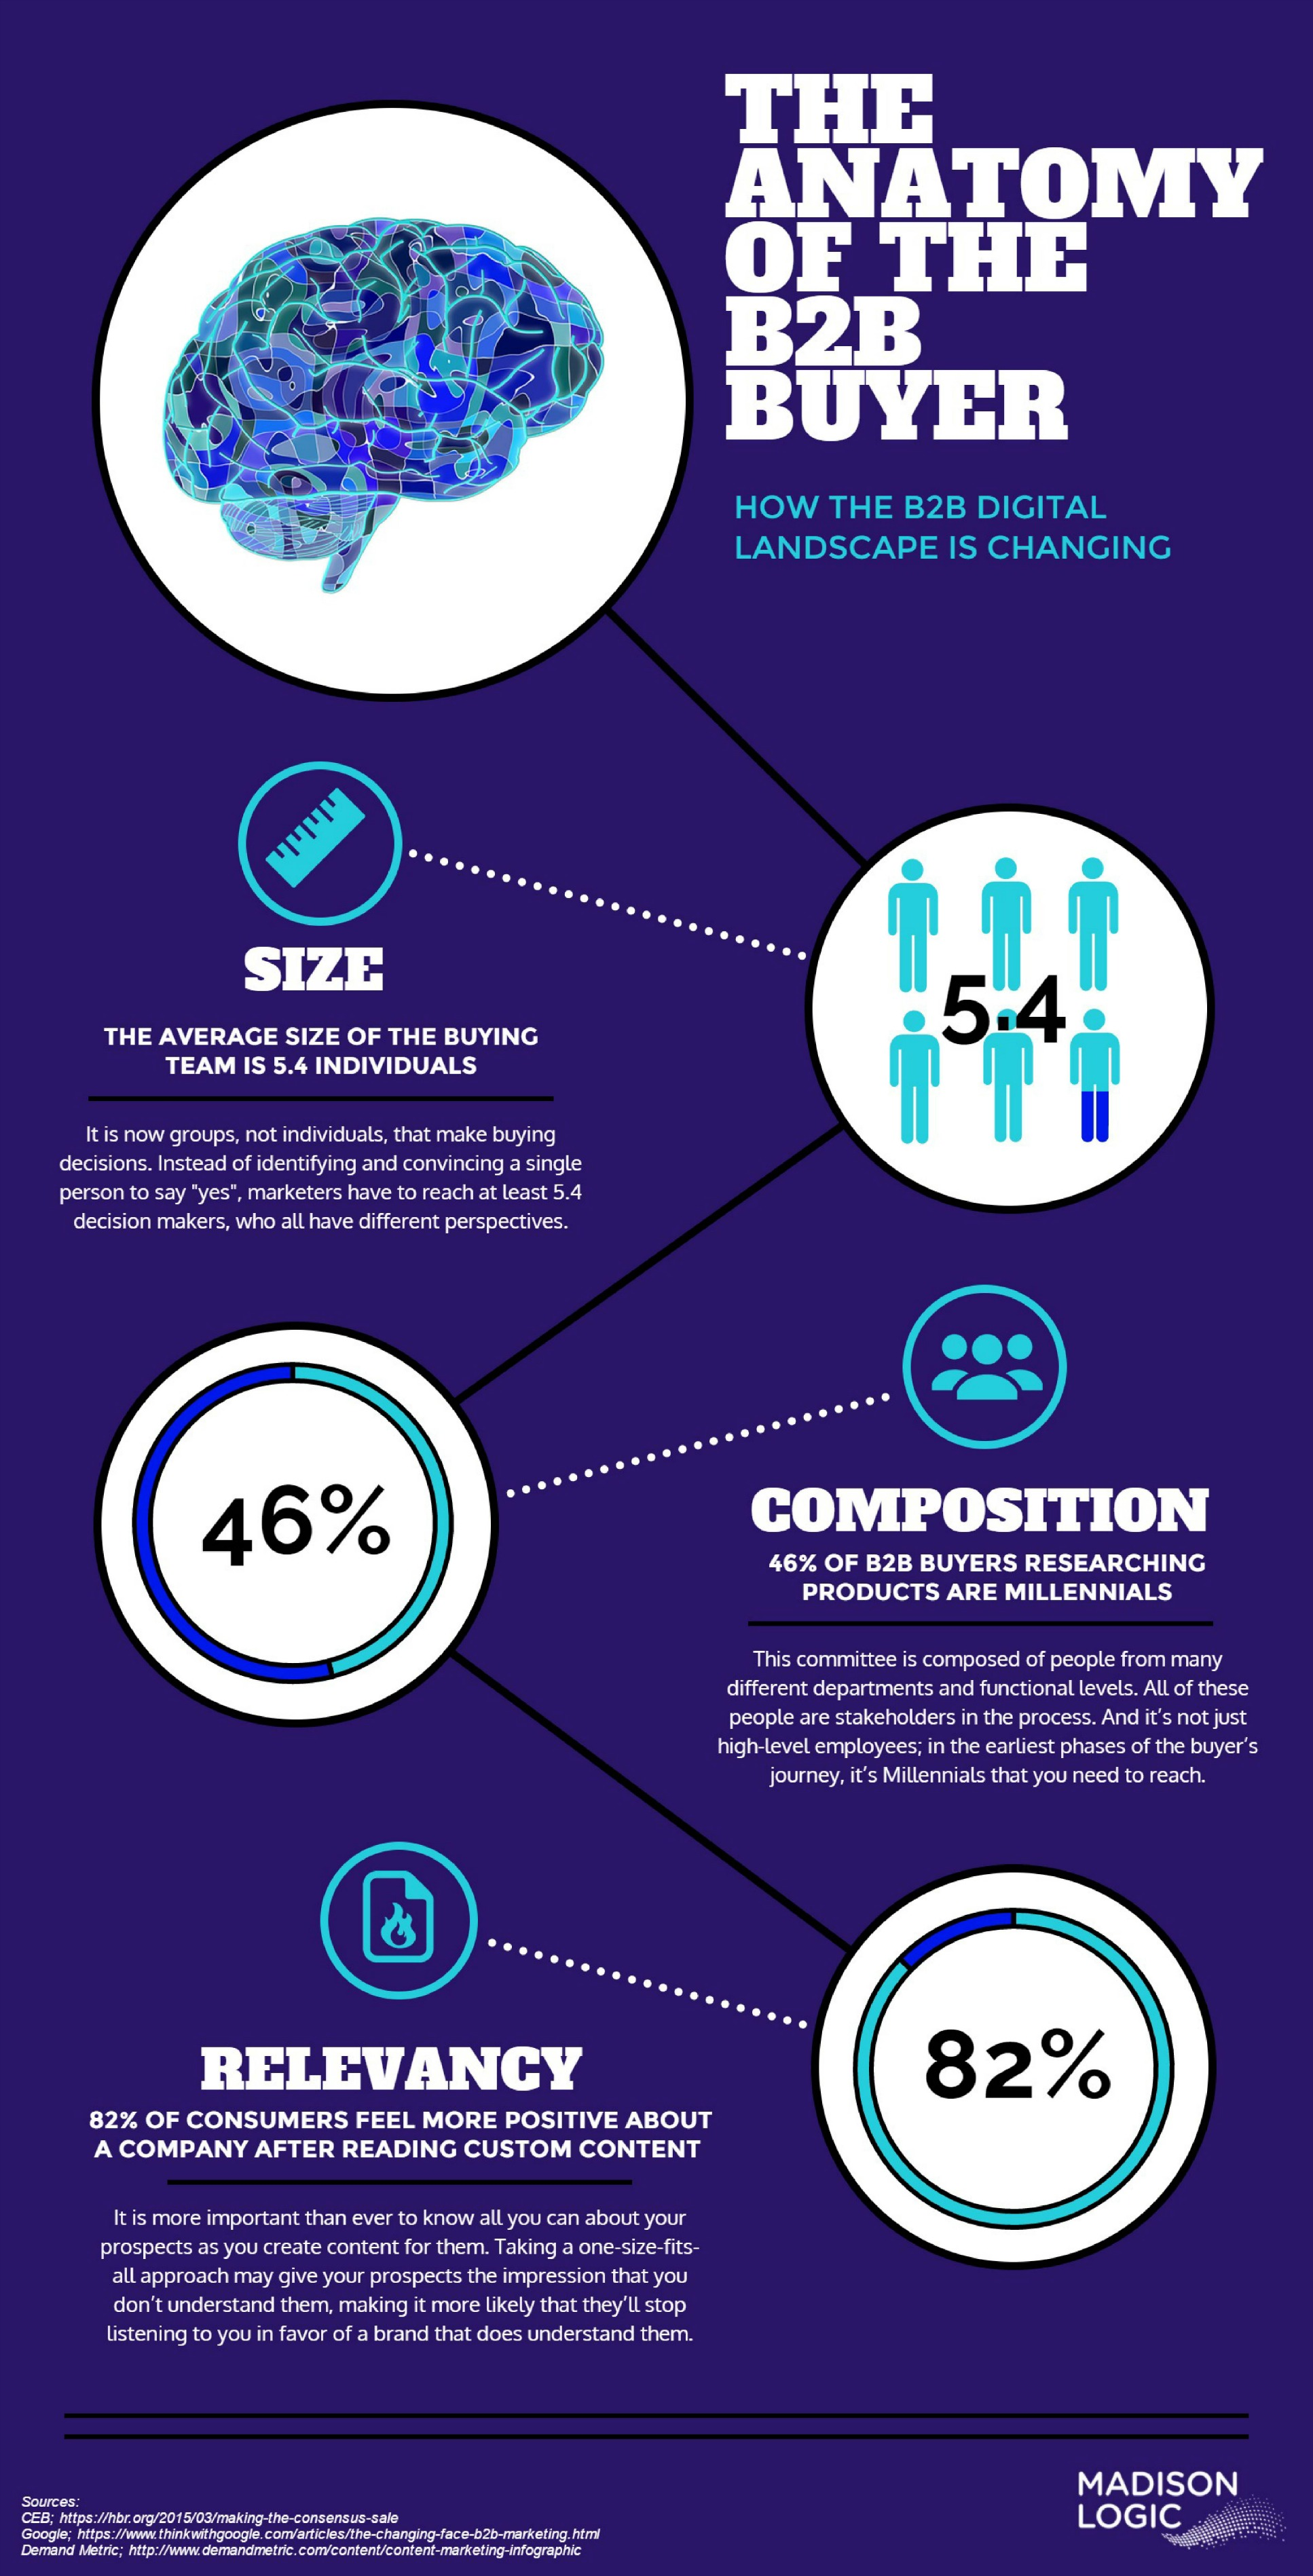 The Anatomy of the B2B Buyer